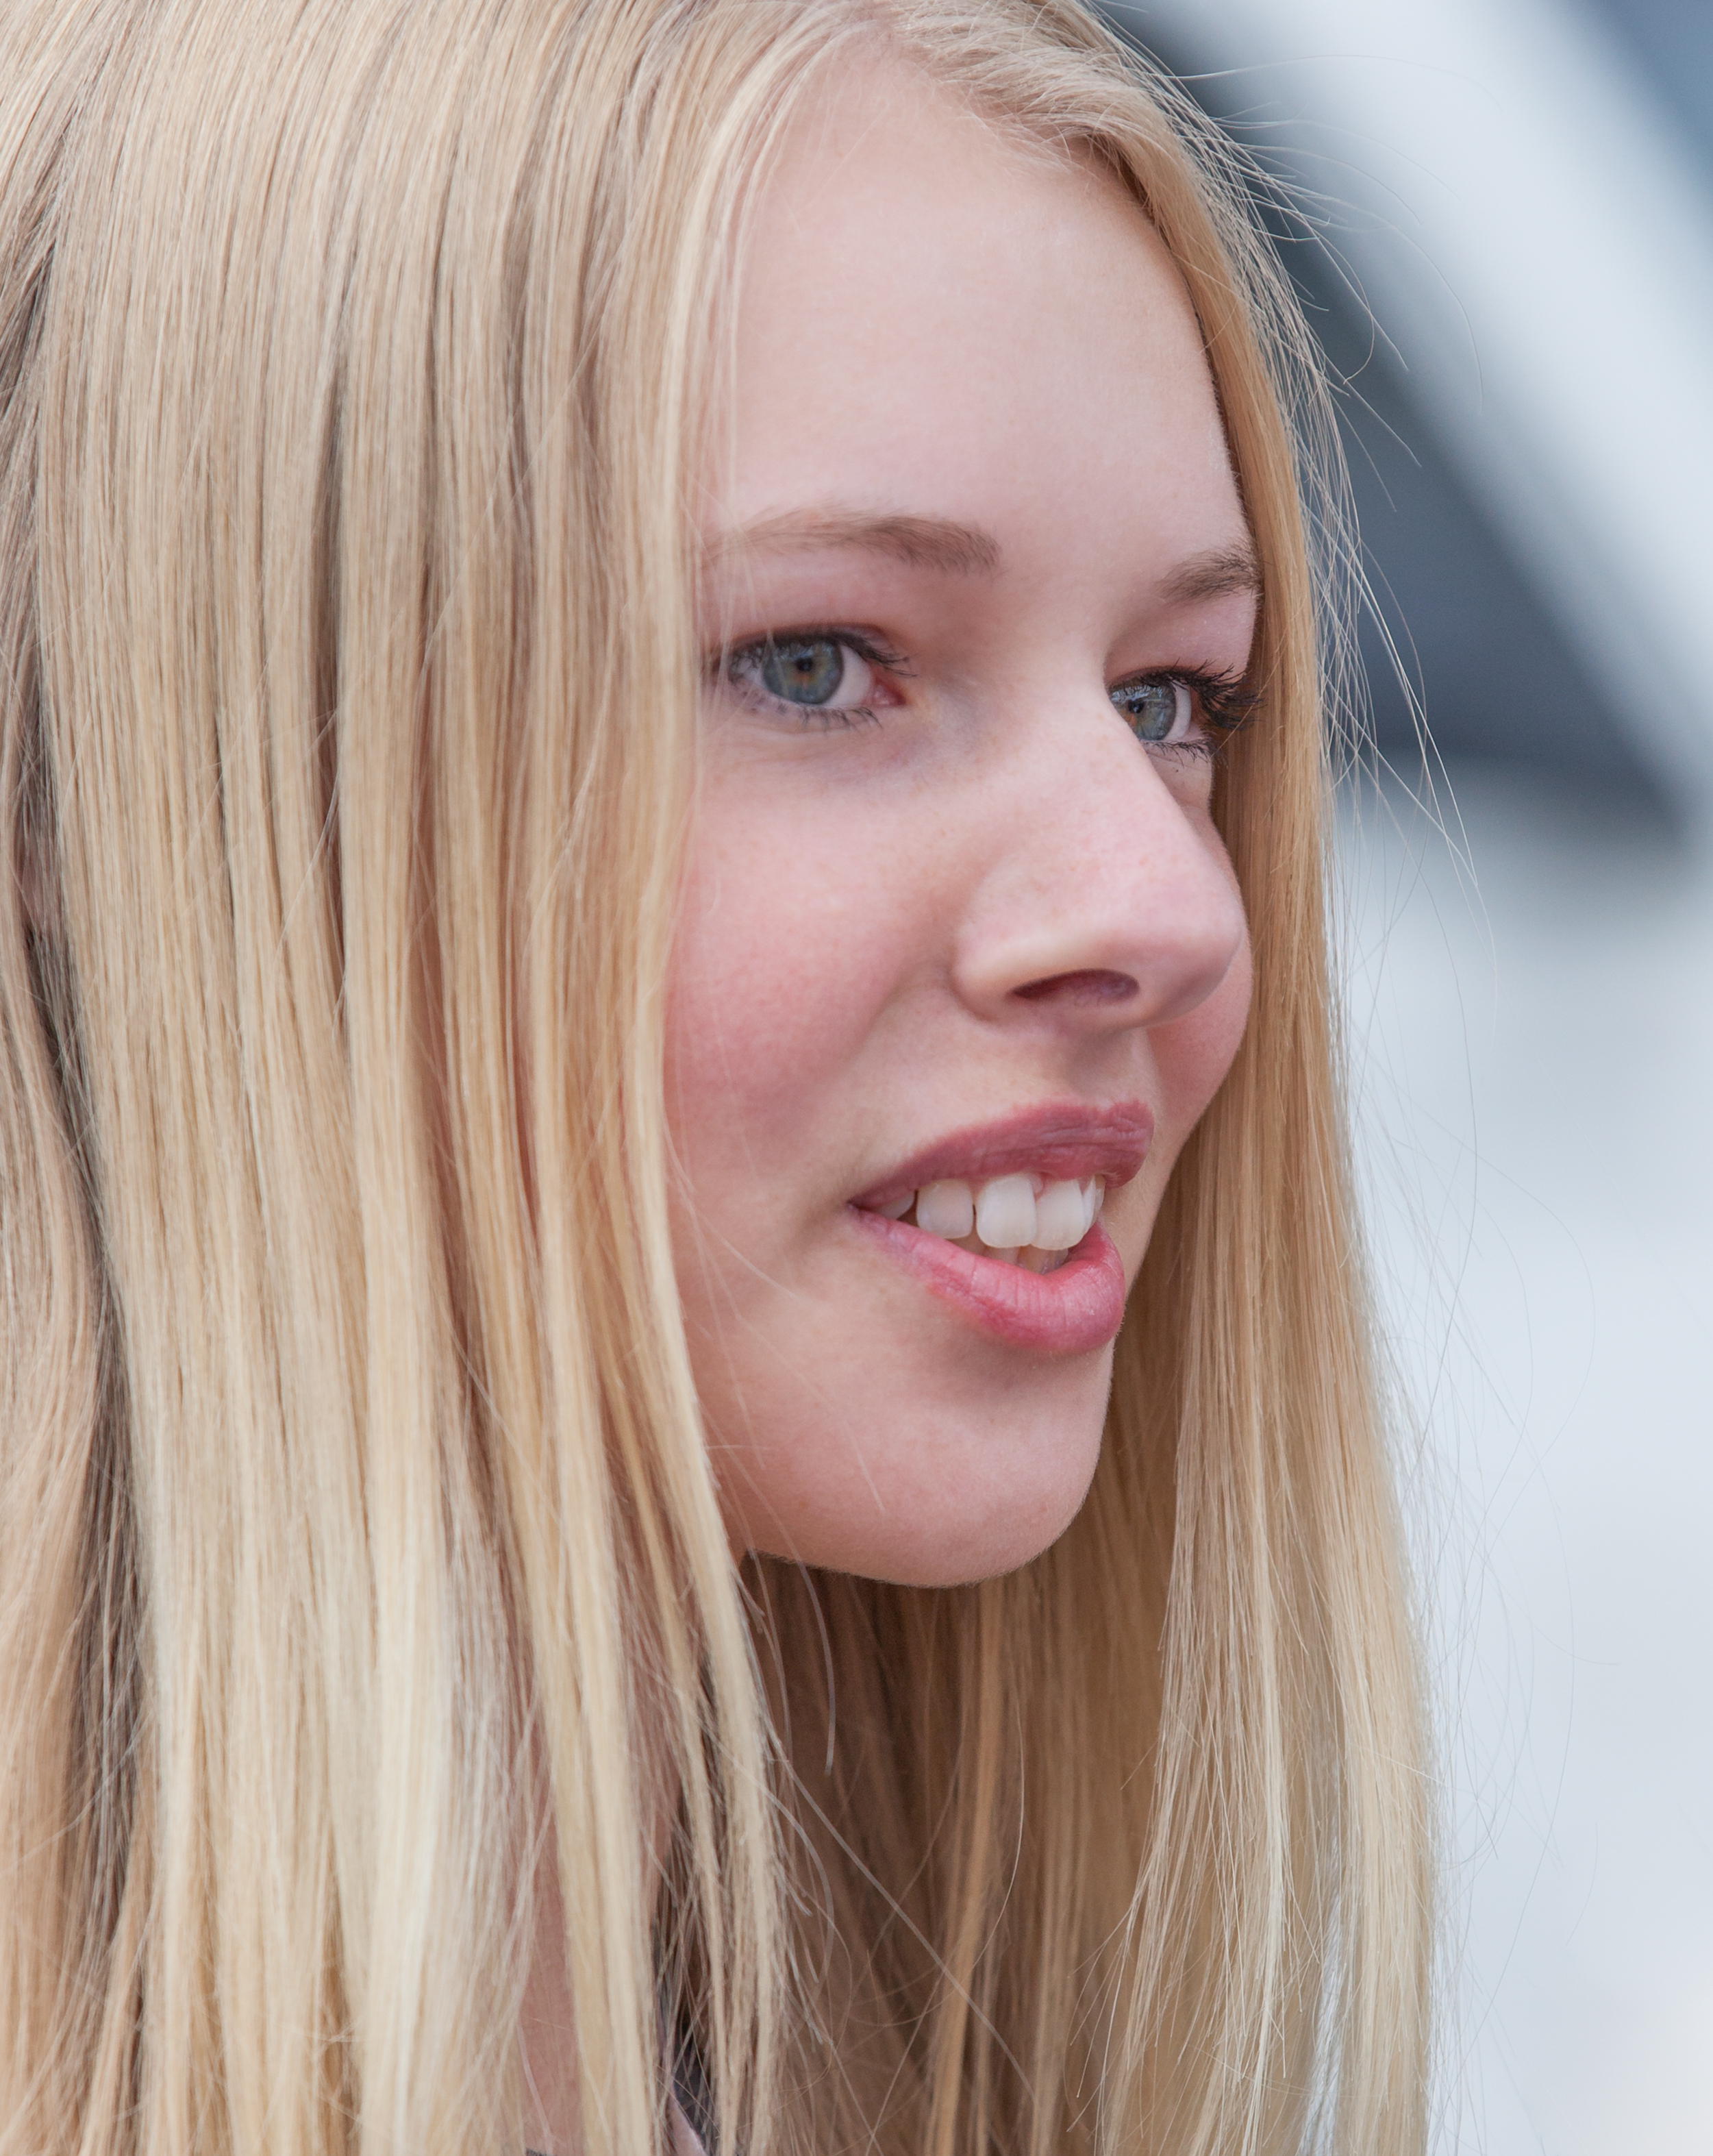 a cute fair-haired girl in Copenhagen, Denmark, in June 2014, picture 52